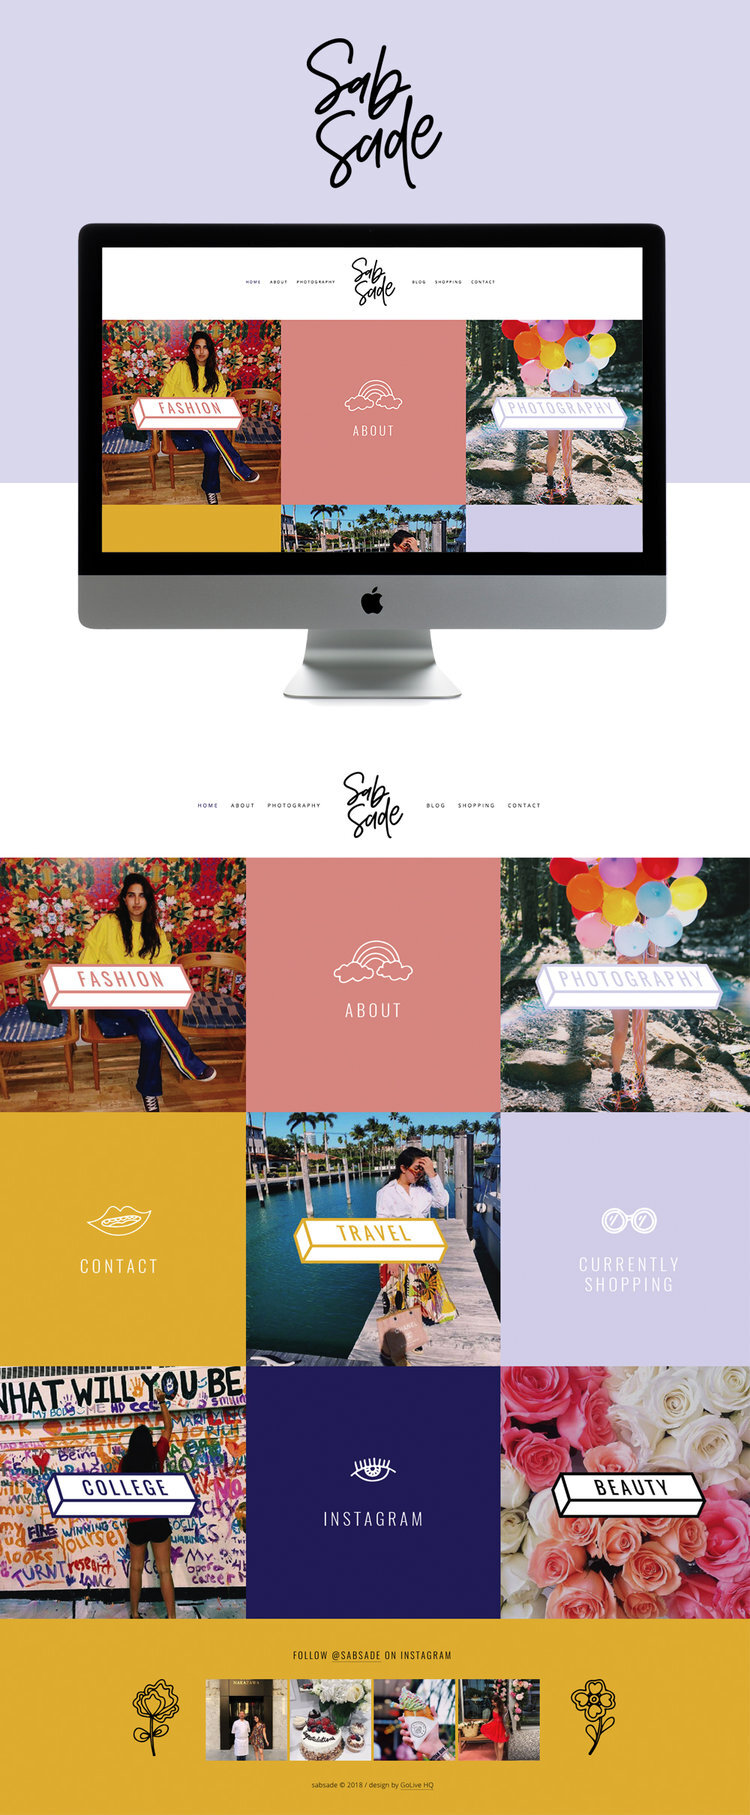 Colorful,+Quirky,+and+Luxurious+Website+Design+for+Fashion+Blogger+_+Site+Design+by+Go+Live+HQ.jpg